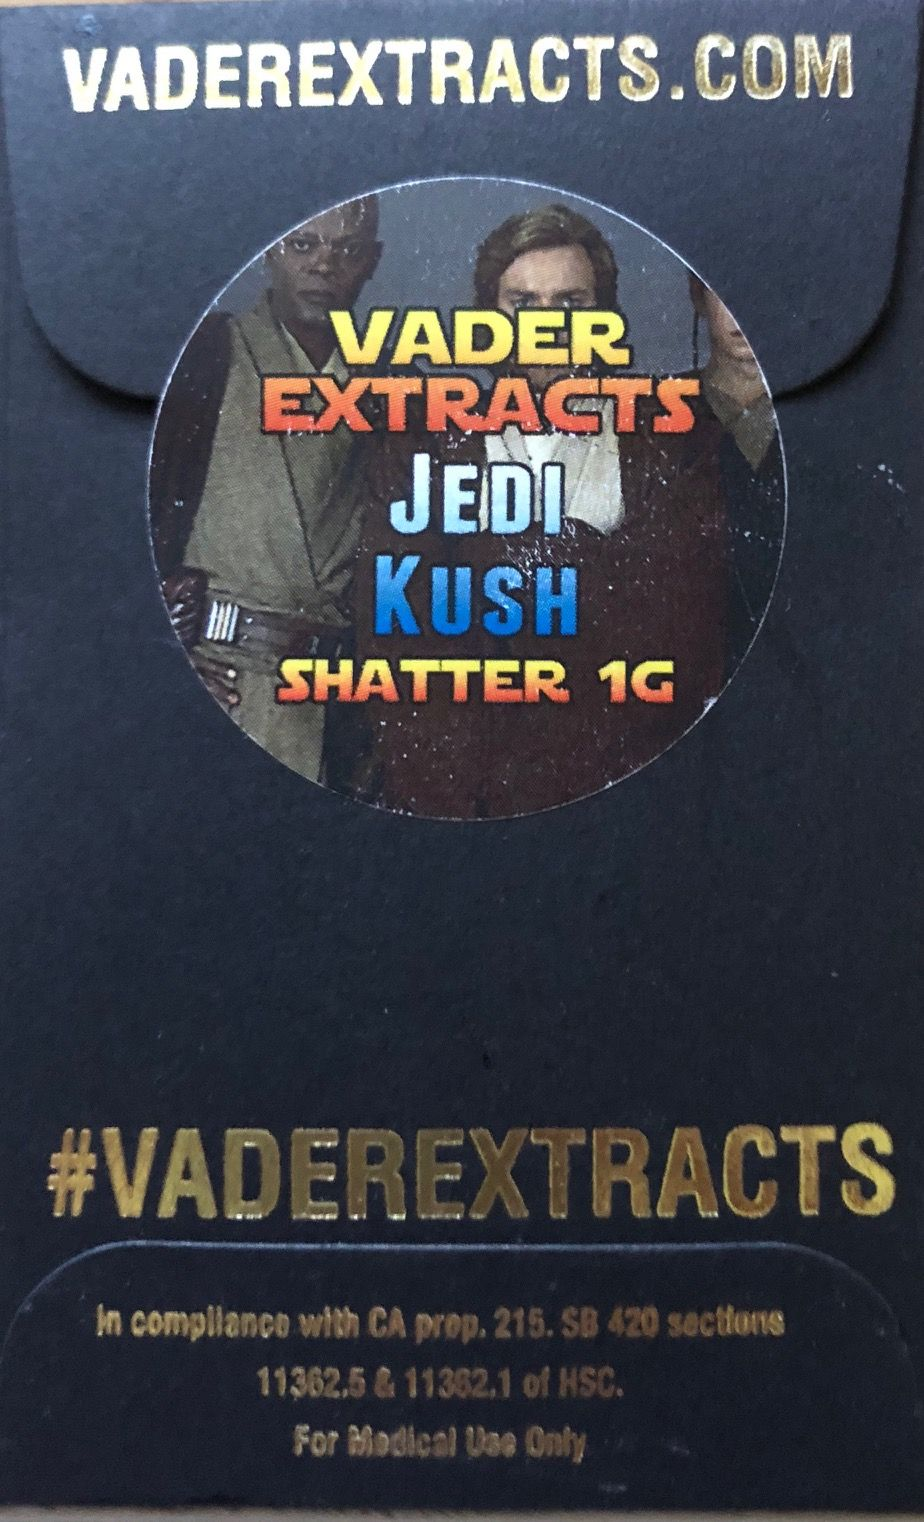 Vader Extracts - Jedi Kush Shatter